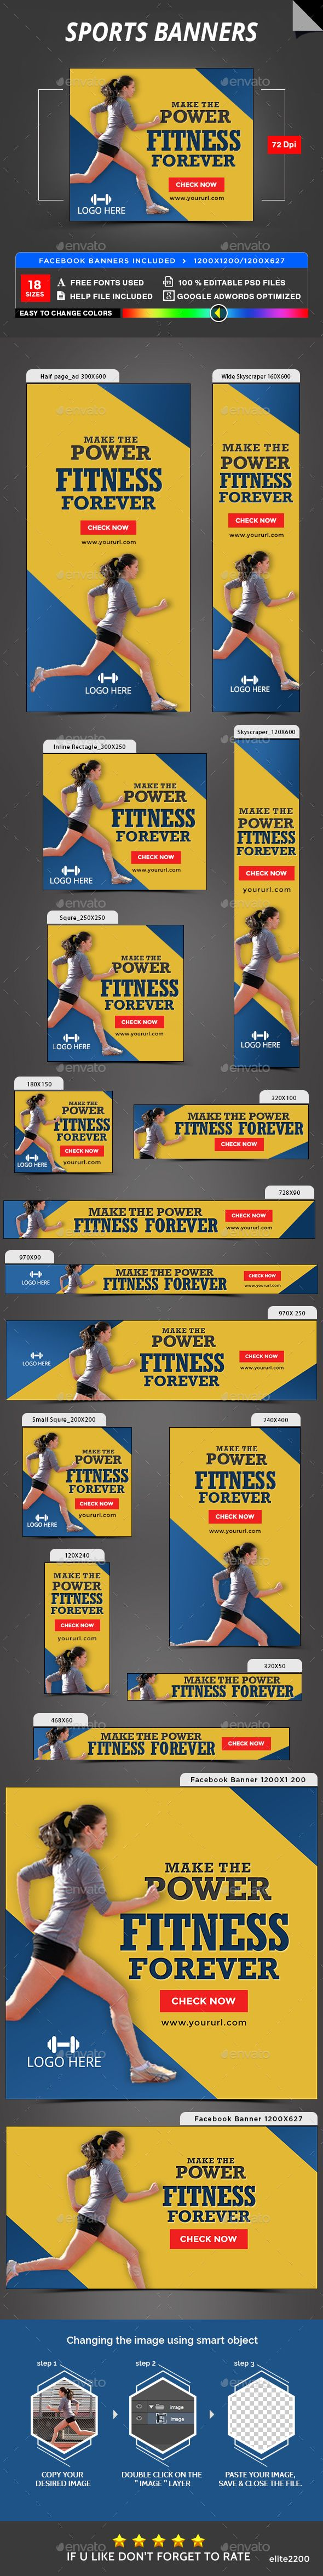 Sports Banners - Banners & Ads Web Elements Download here : https://graphicriver.net/item/sports-banners/19753903?s_rank=149&ref=Al-fatih